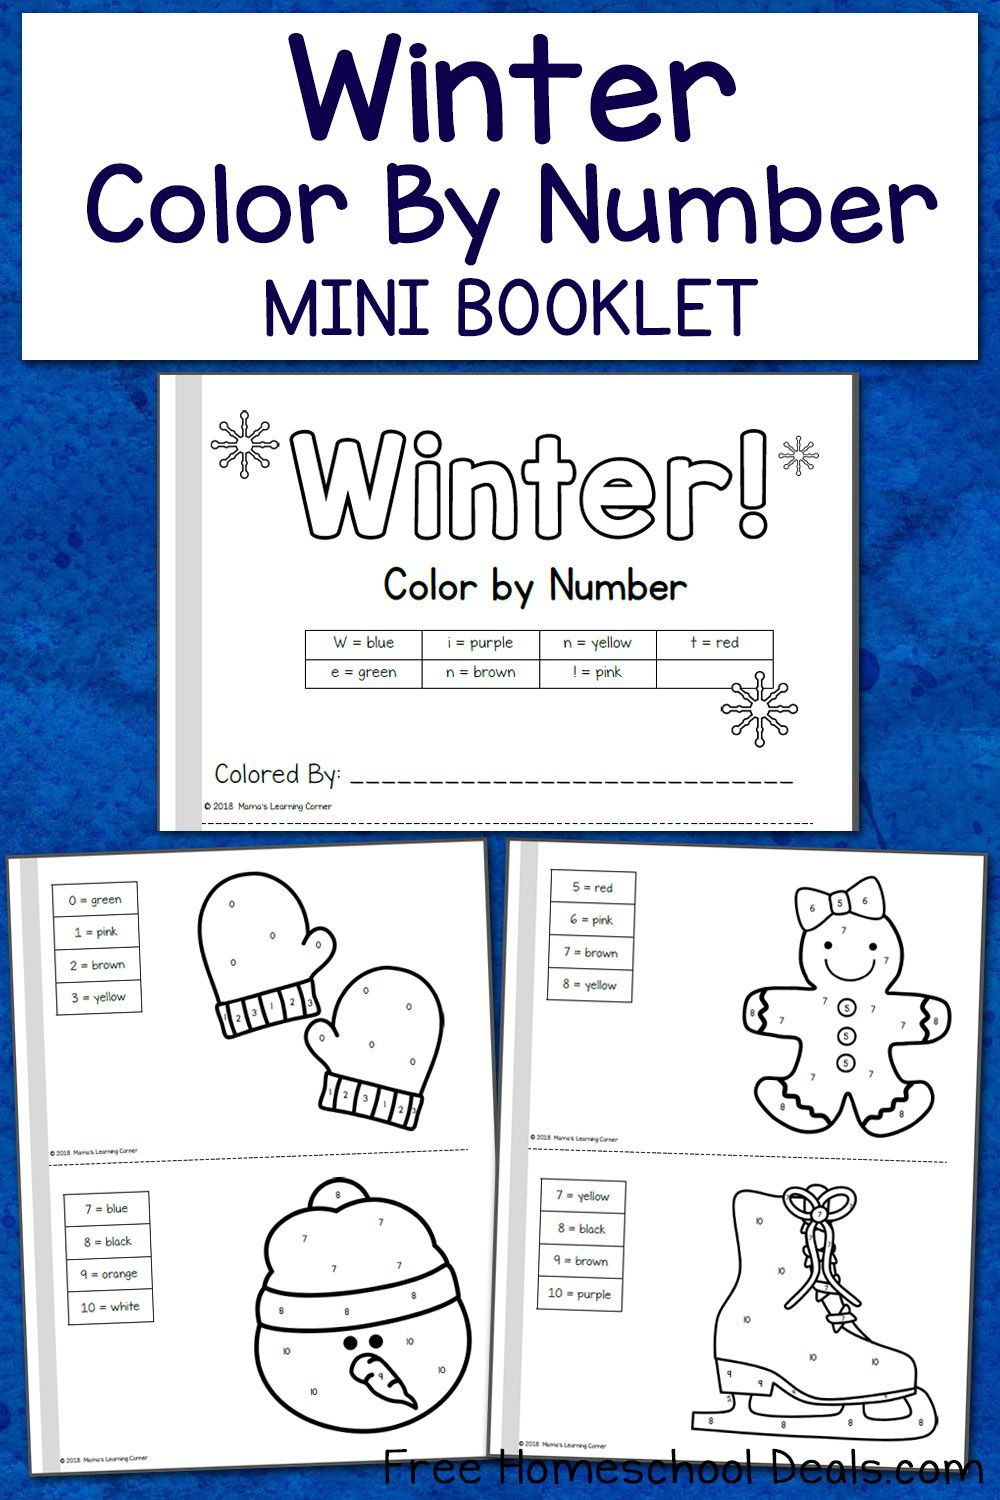 Free Winter Color By Number Mini Book Instant Download Kindergarten Mini Books Mini Books Kindergarten Books [ 1500 x 1000 Pixel ]